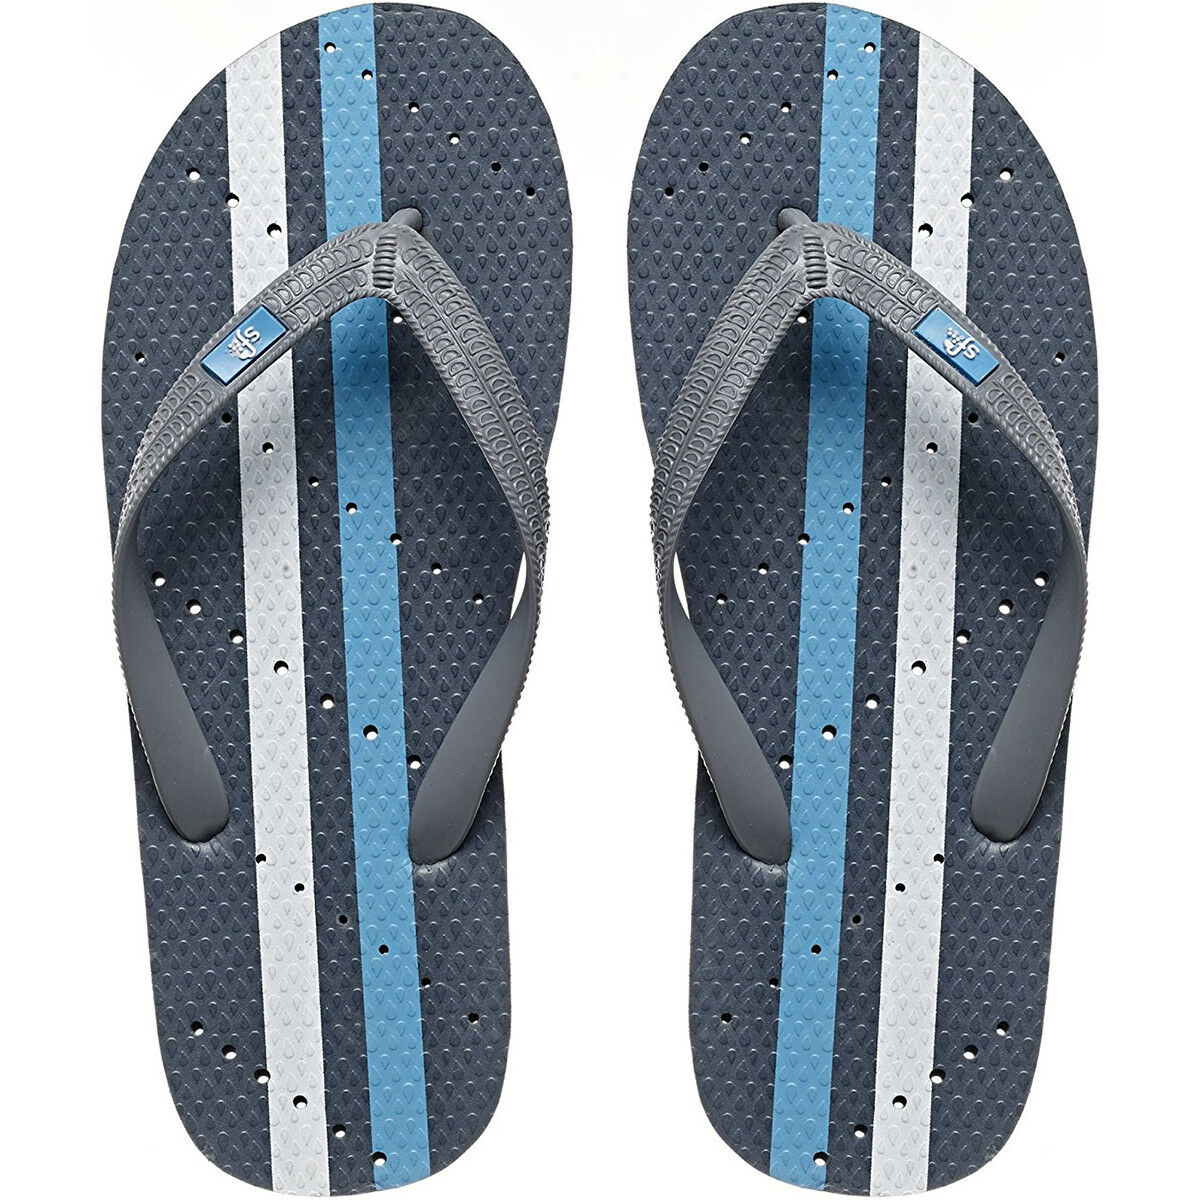 1e20068c000 Showaflops Antimicrobial Shower and and and Water Sandals -  Gray Turquoise White Stripe 296e18